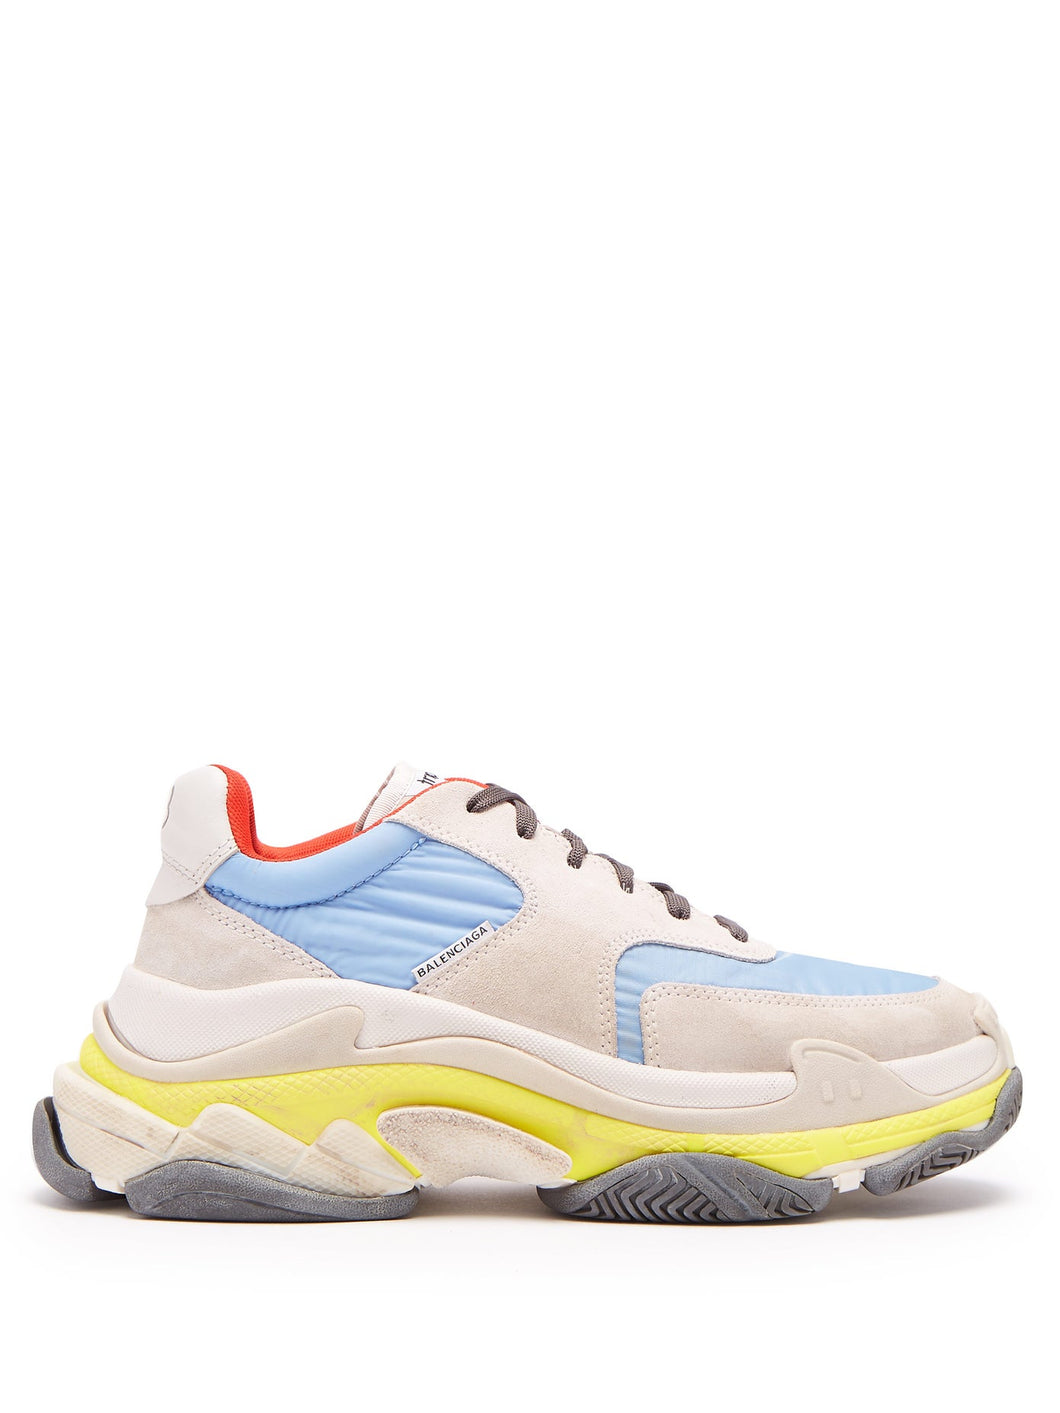 Triple S low-top trainers